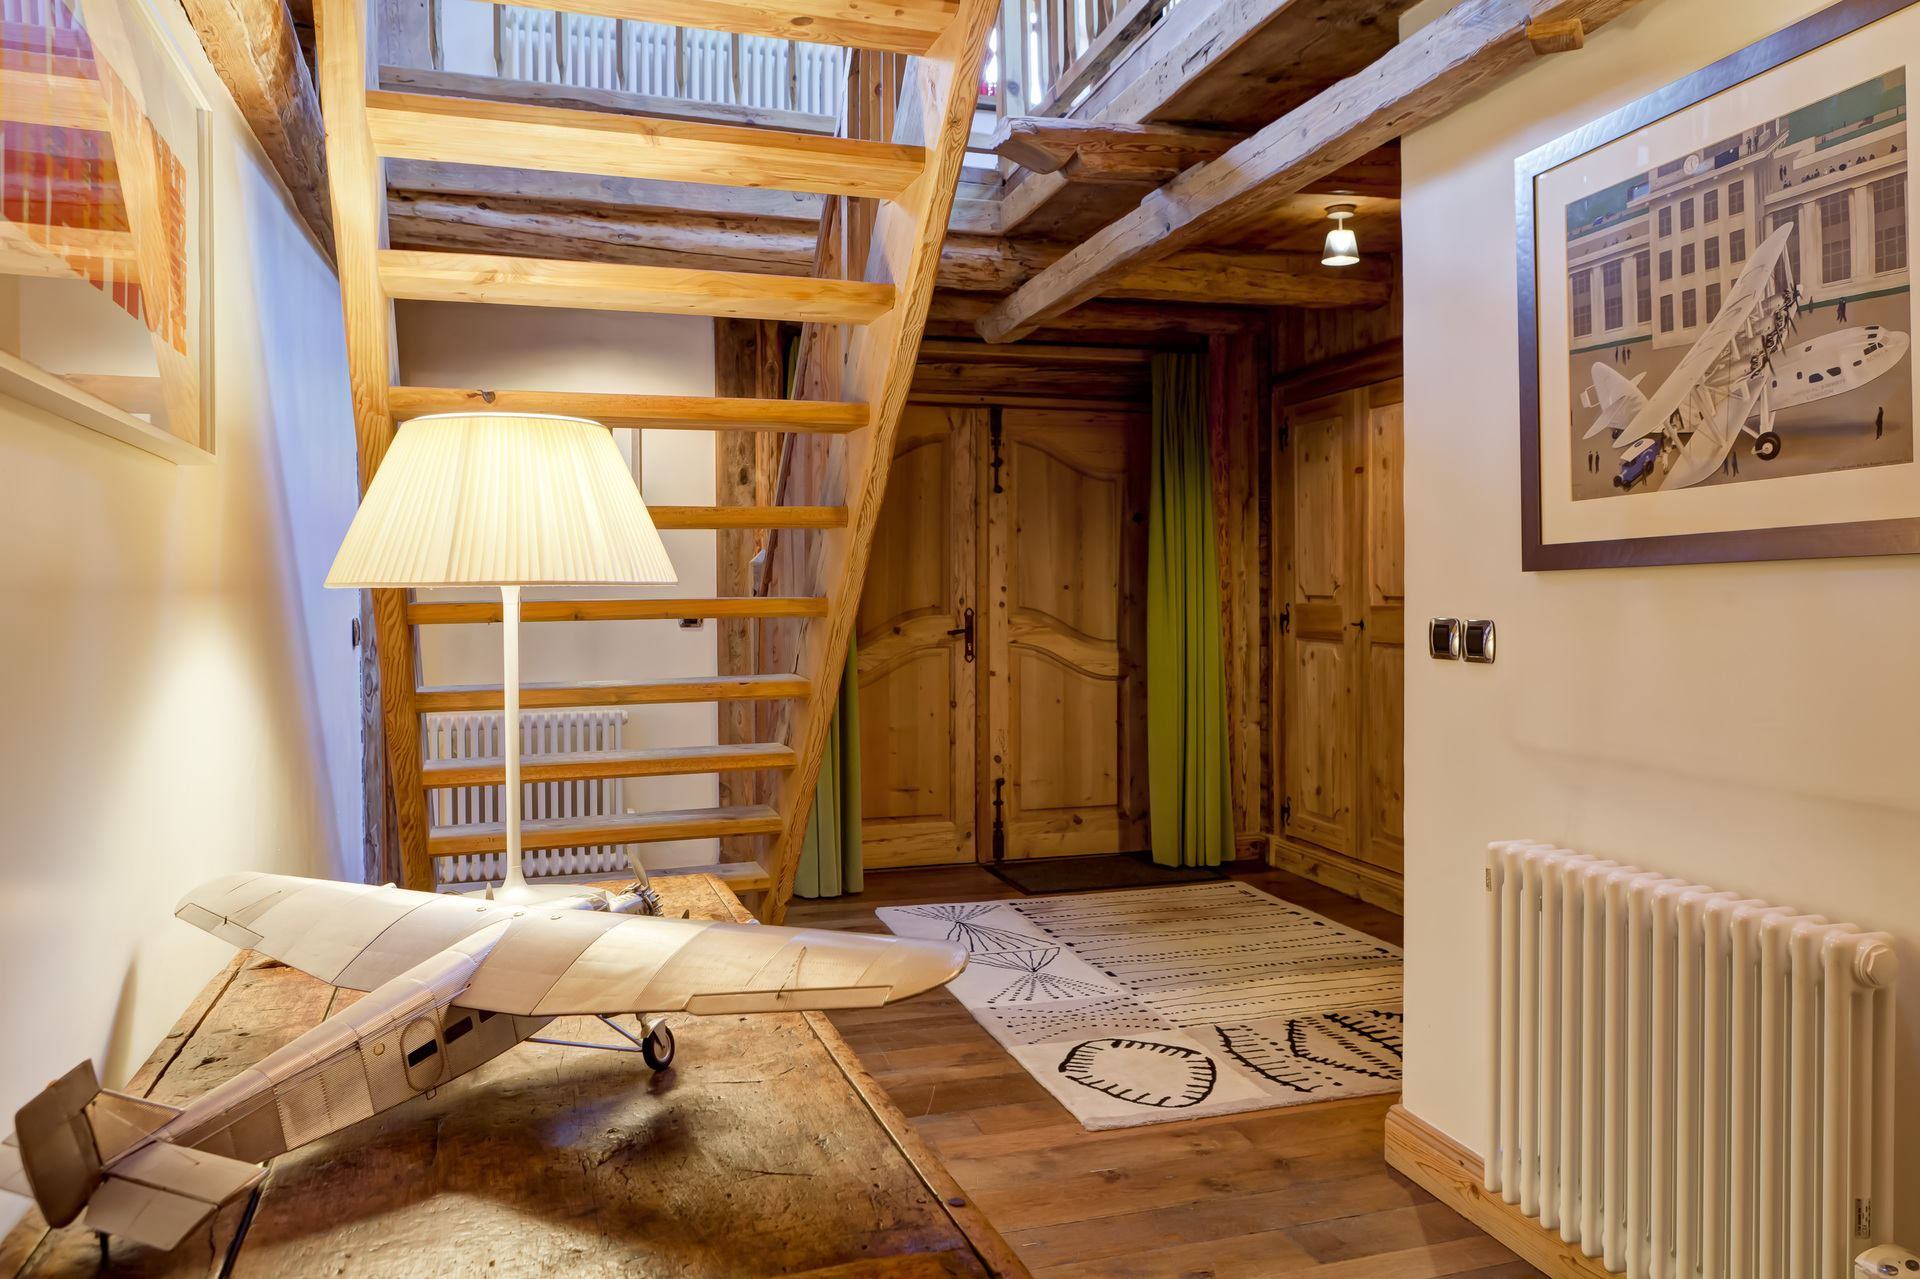 5 rooms 8 people / CHALET MAISON DU PRAZ (mountain of dream)